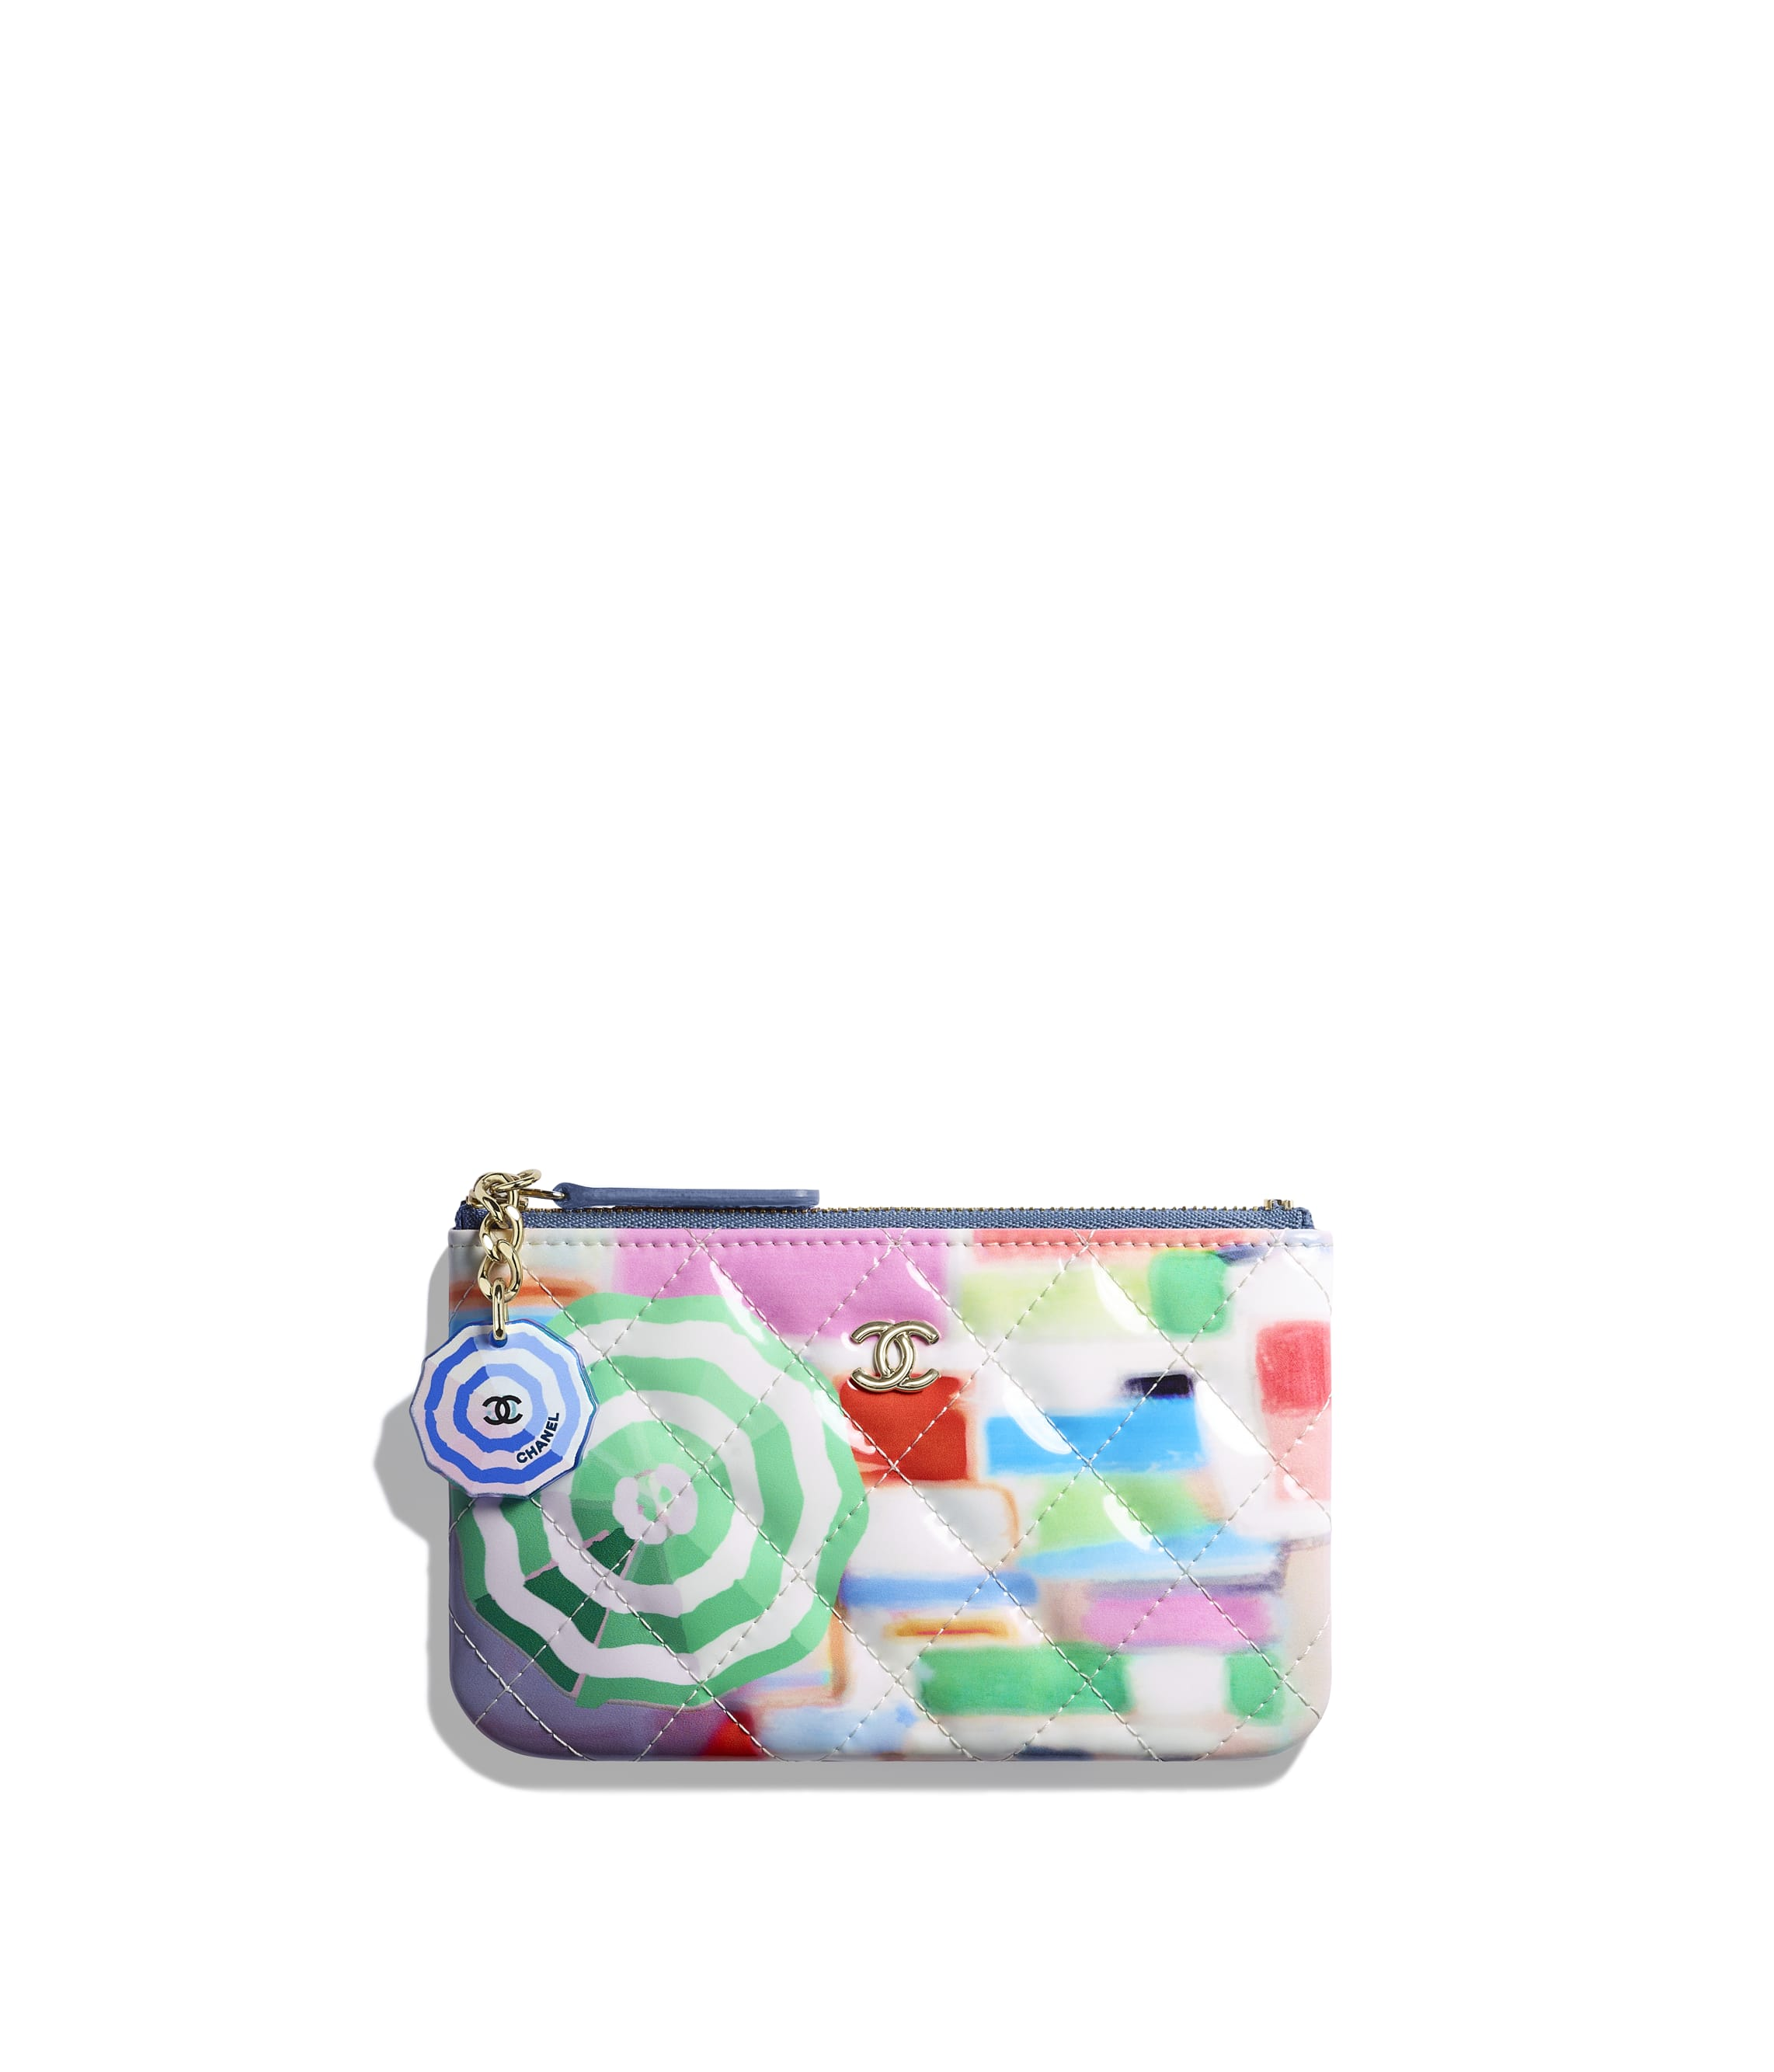 88f344d84fce Classic Small Pouch. Printed Patent Calfskin   Gold-Tone Metal